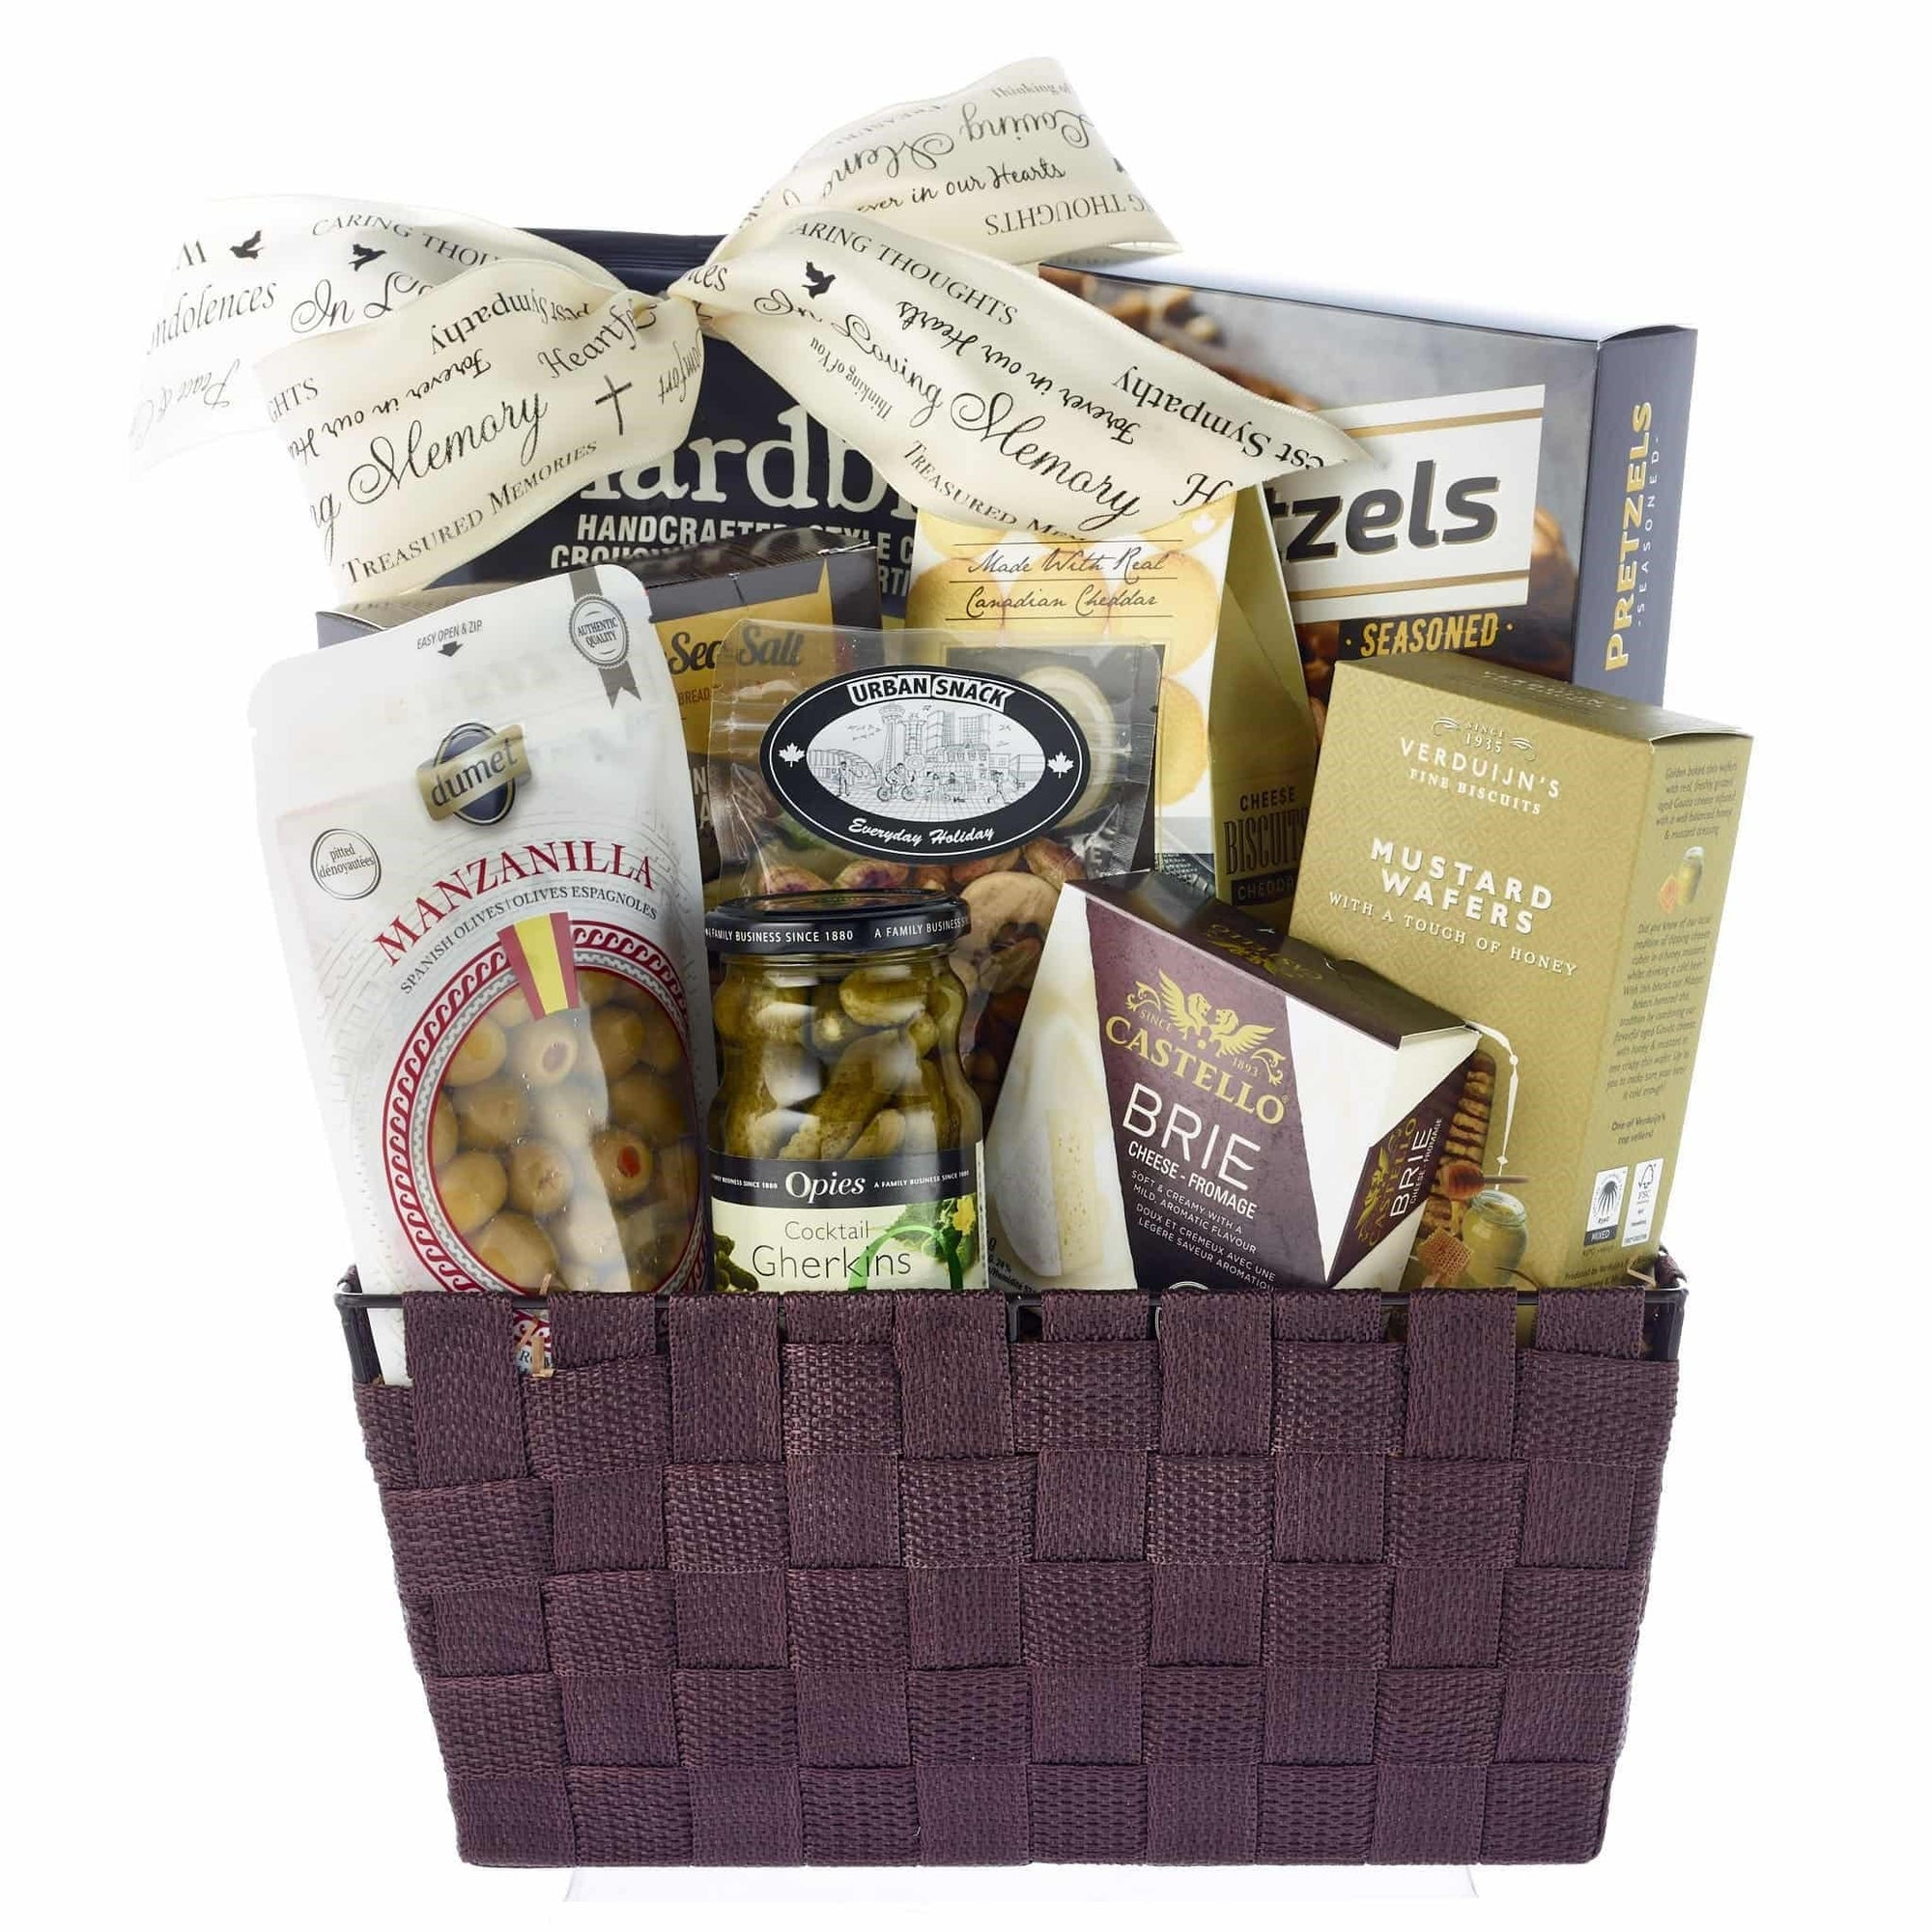 Cheese, crackers, olives, sympathy gift